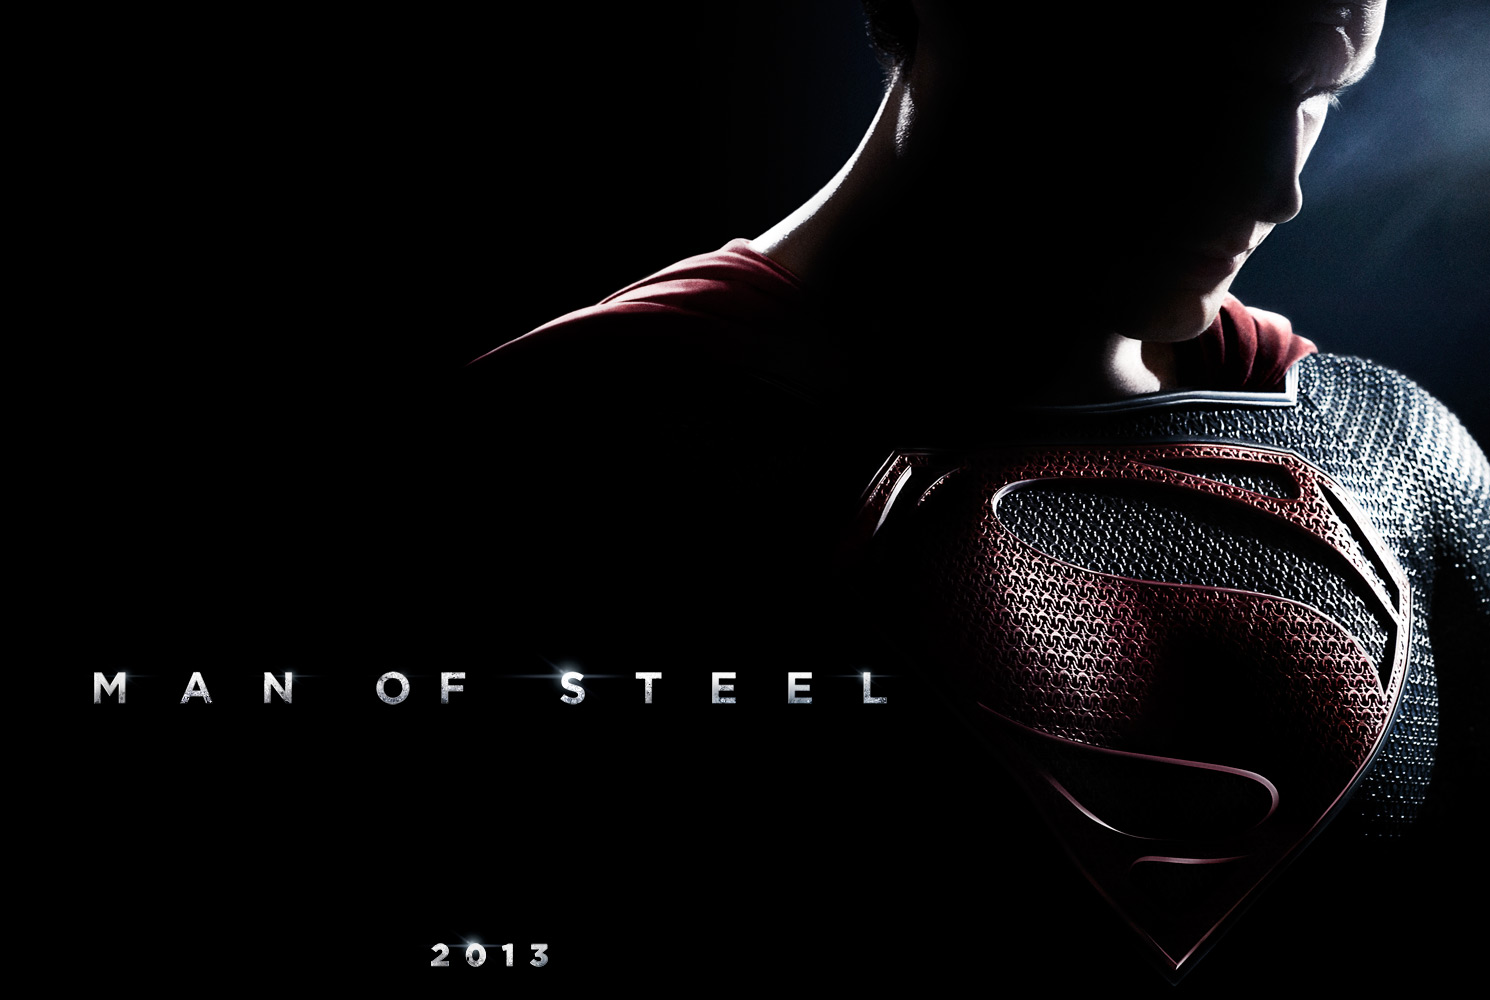 Man of Steel neuer Trailer